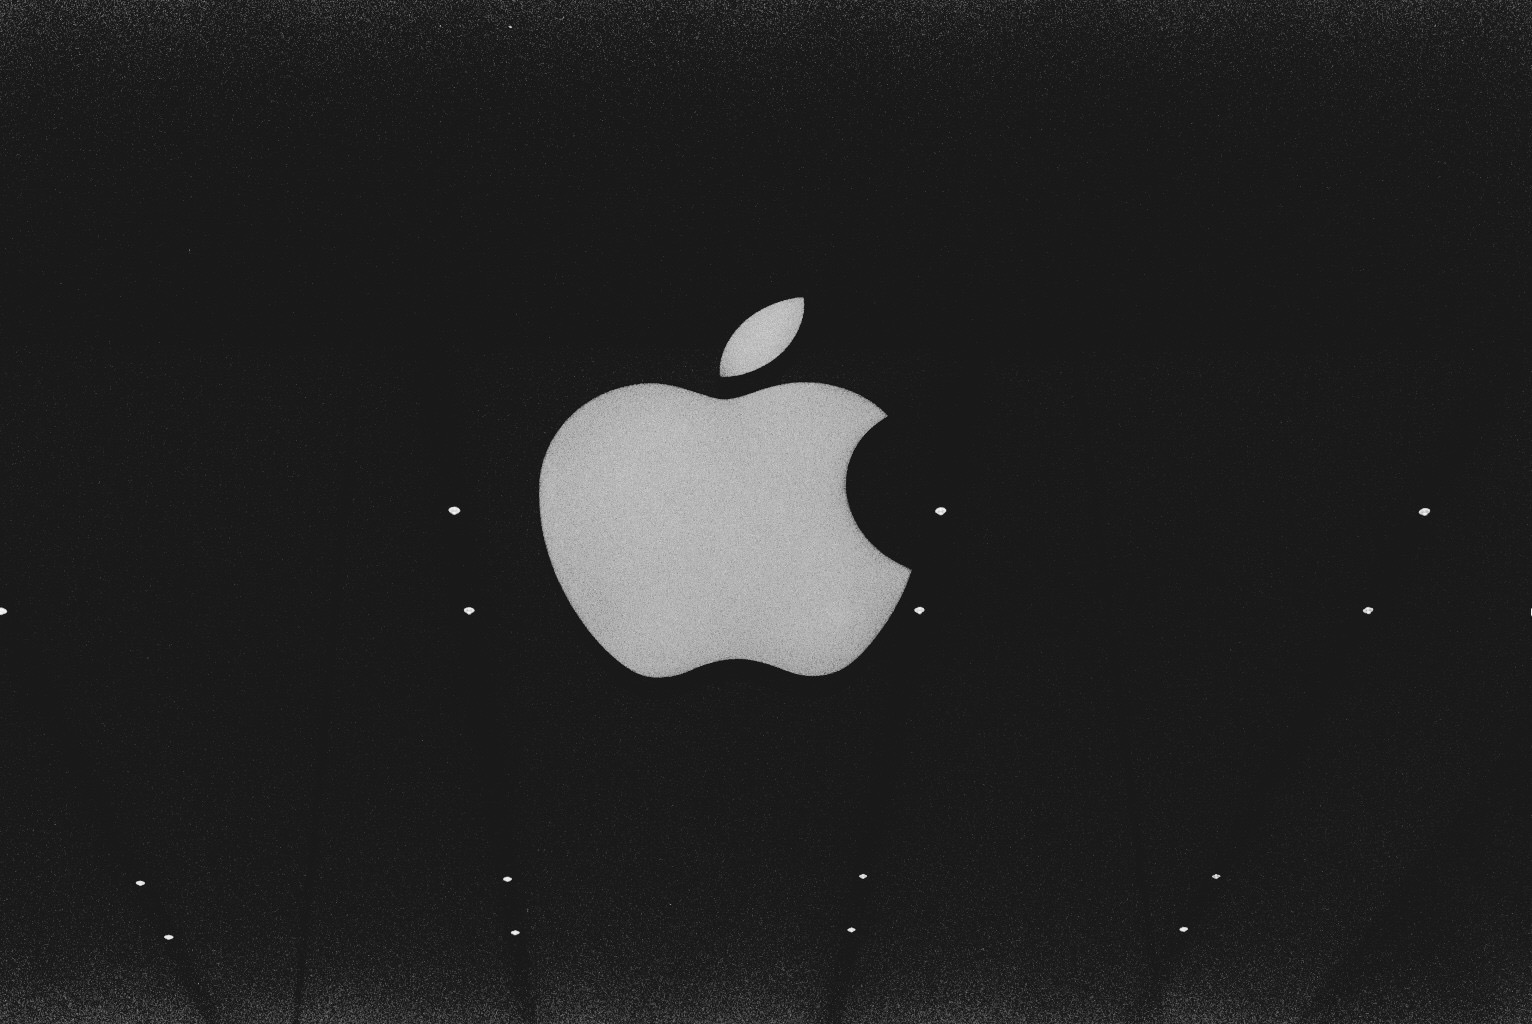 Apple logo Brussels store in black and white